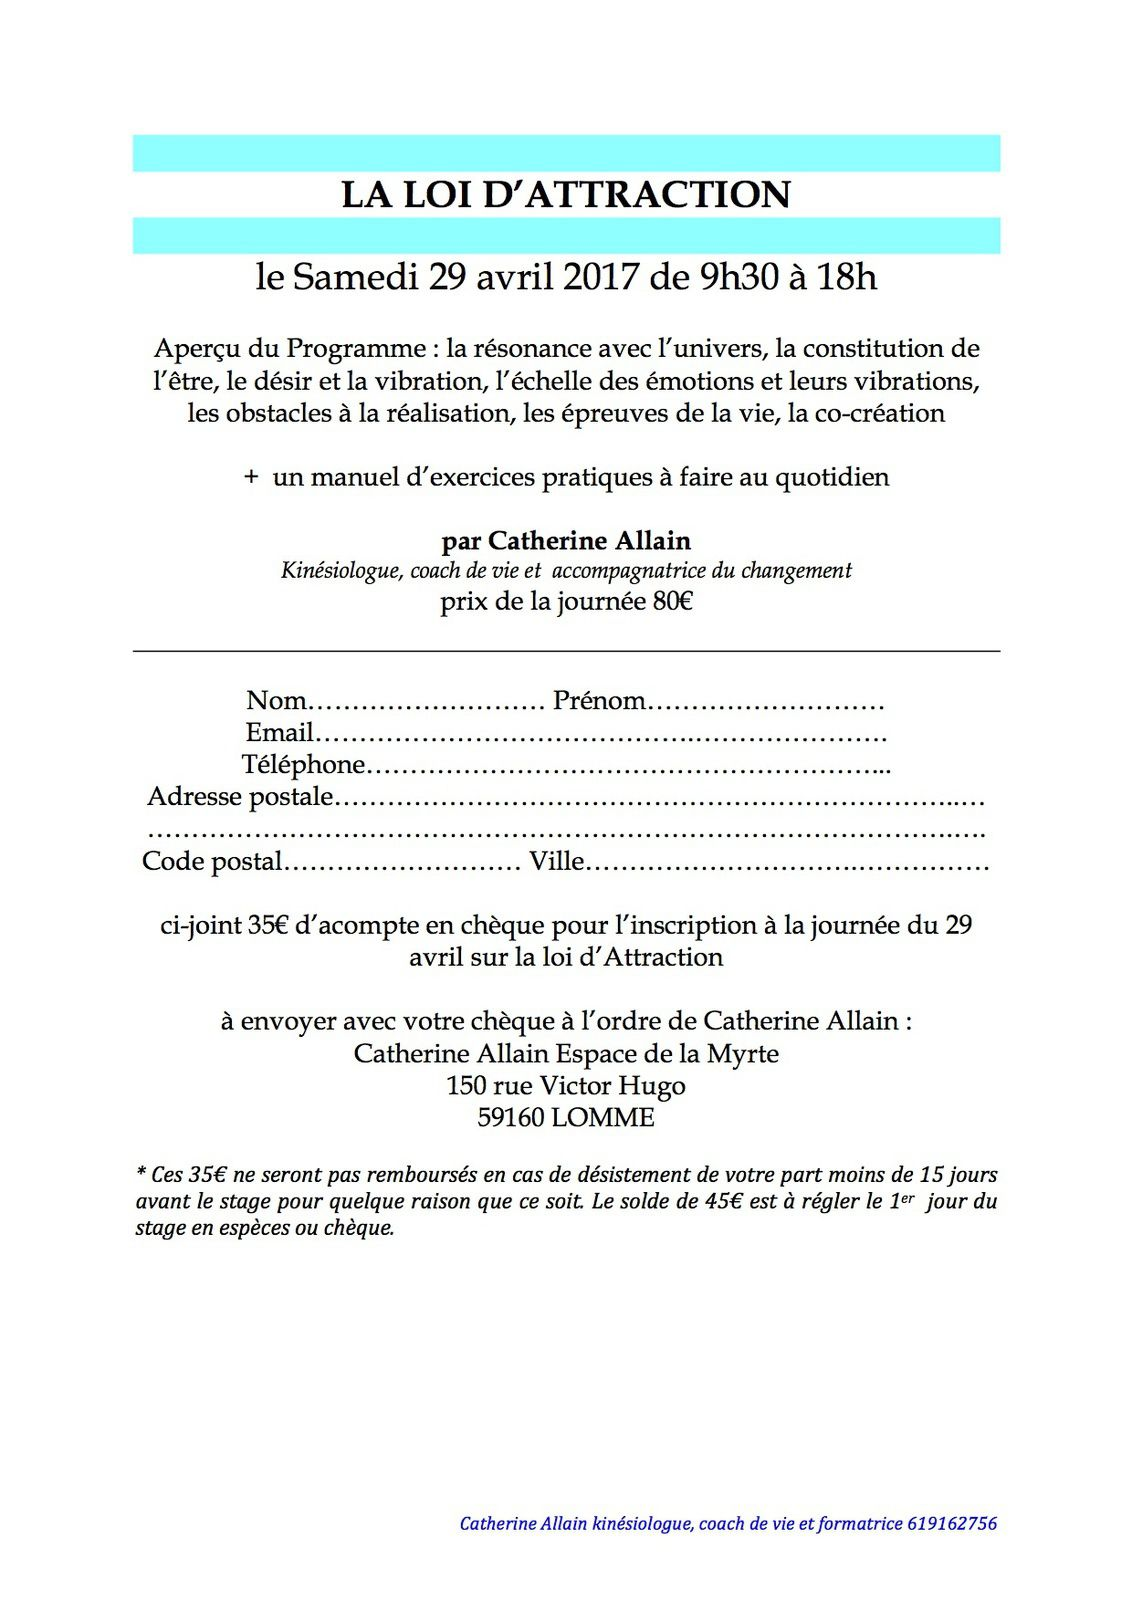 loi d'attraction 29 avril 2017